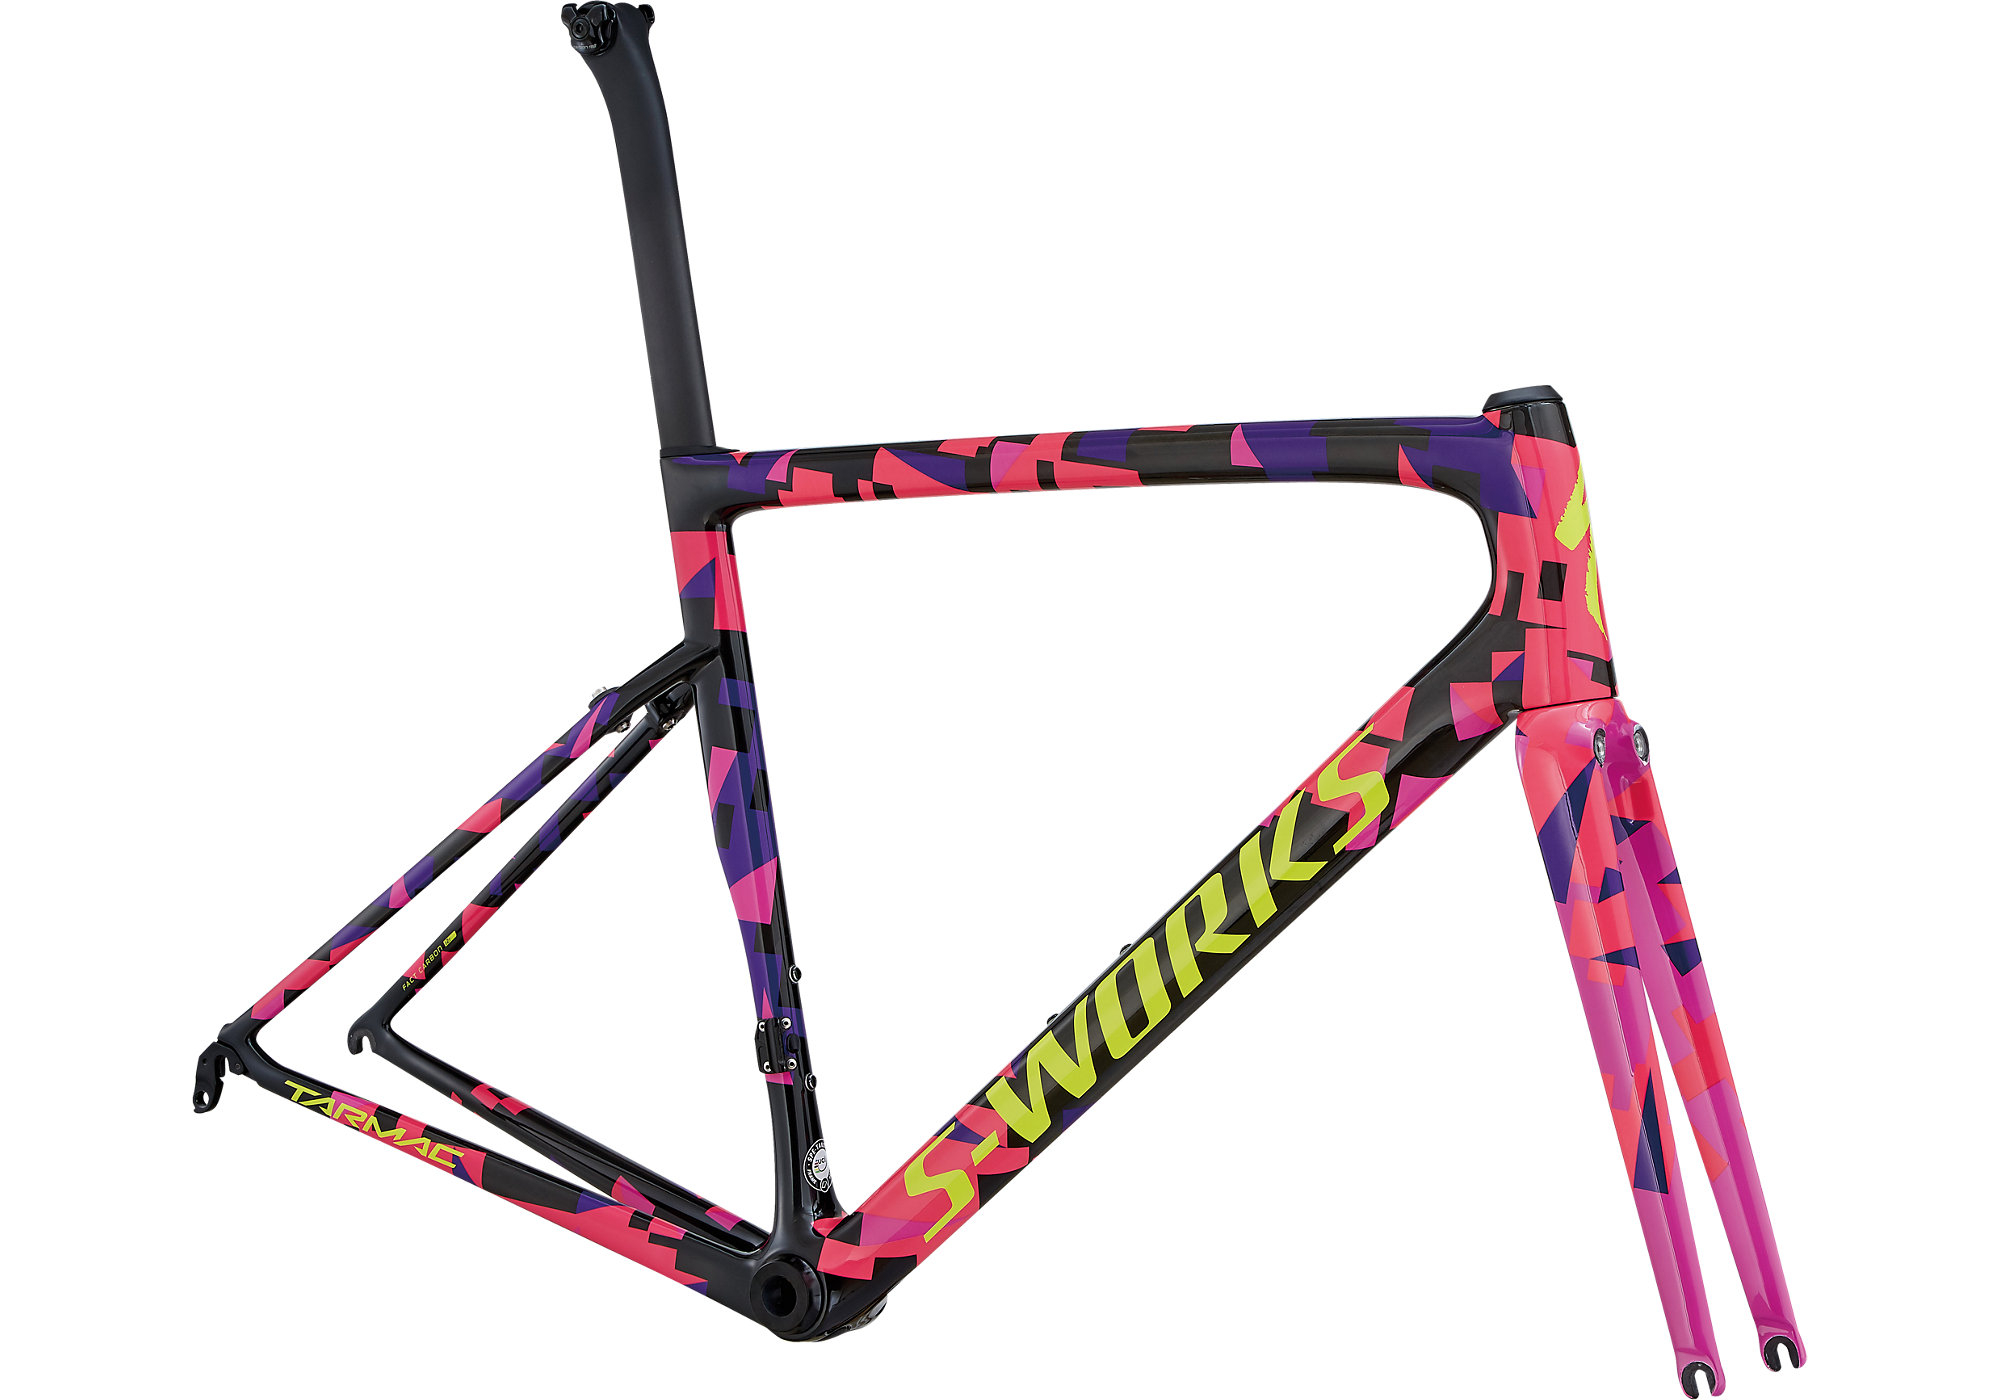 2018 Specialized S Works Tarmac Frameset Specialized